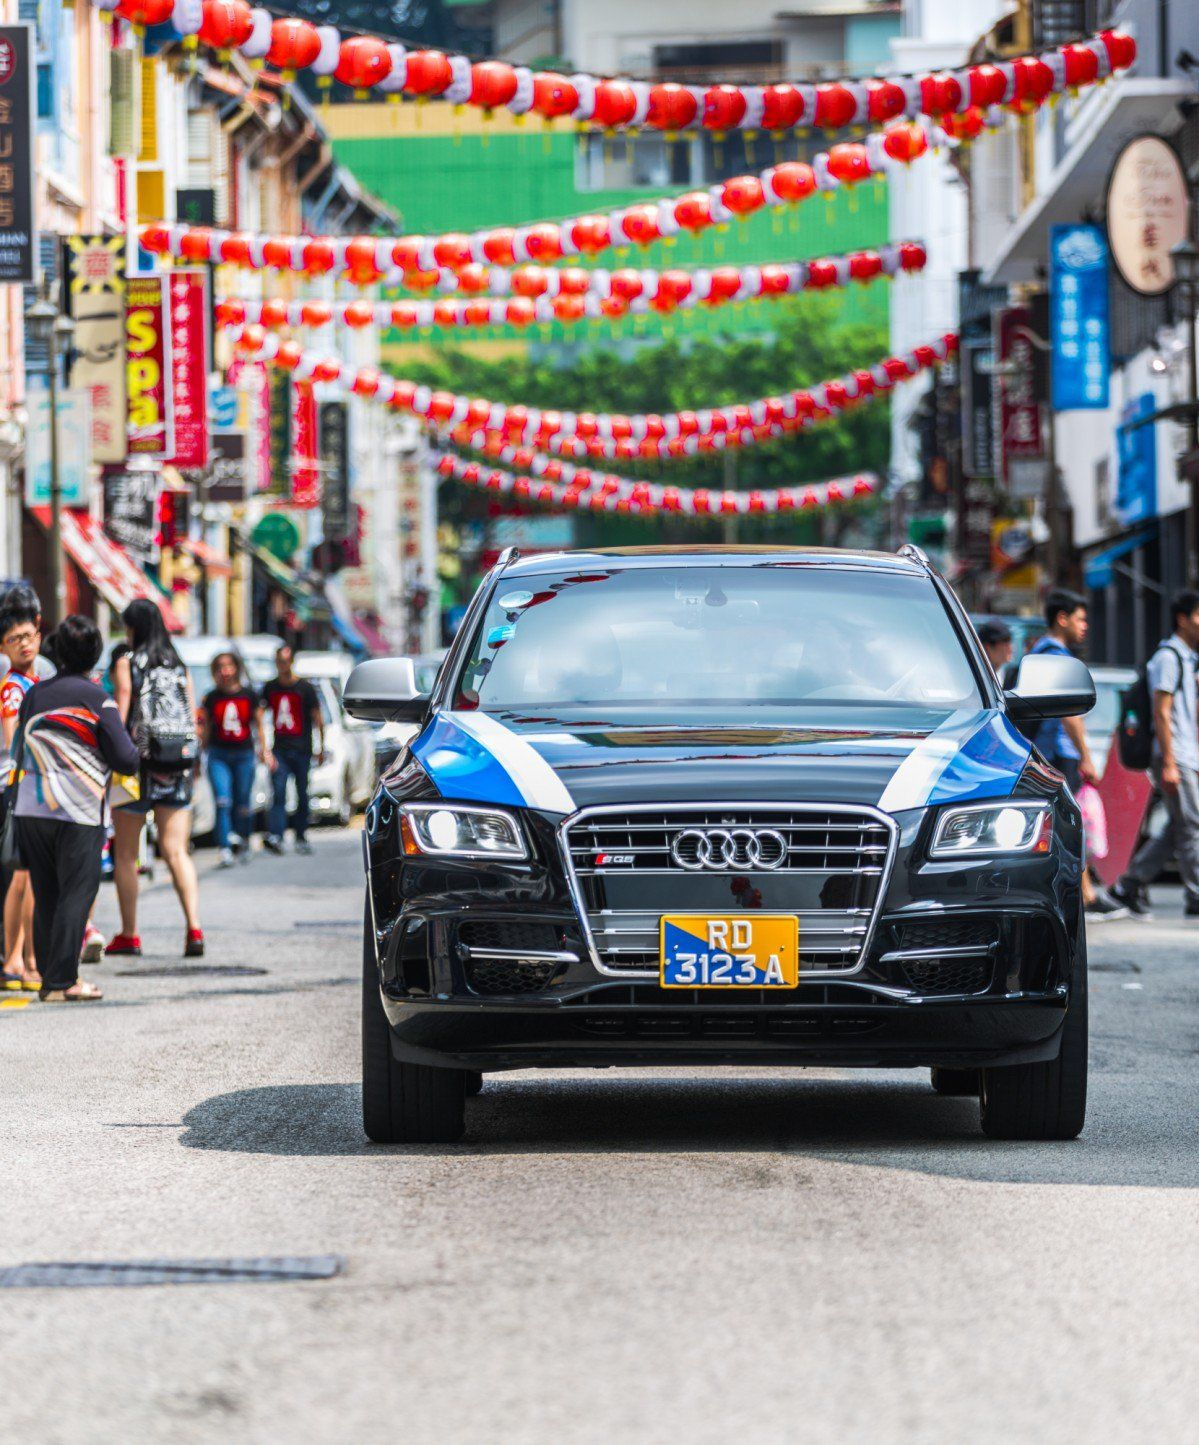 Self-Driving Delphi Taxis Prepare for Singapore Streets Test